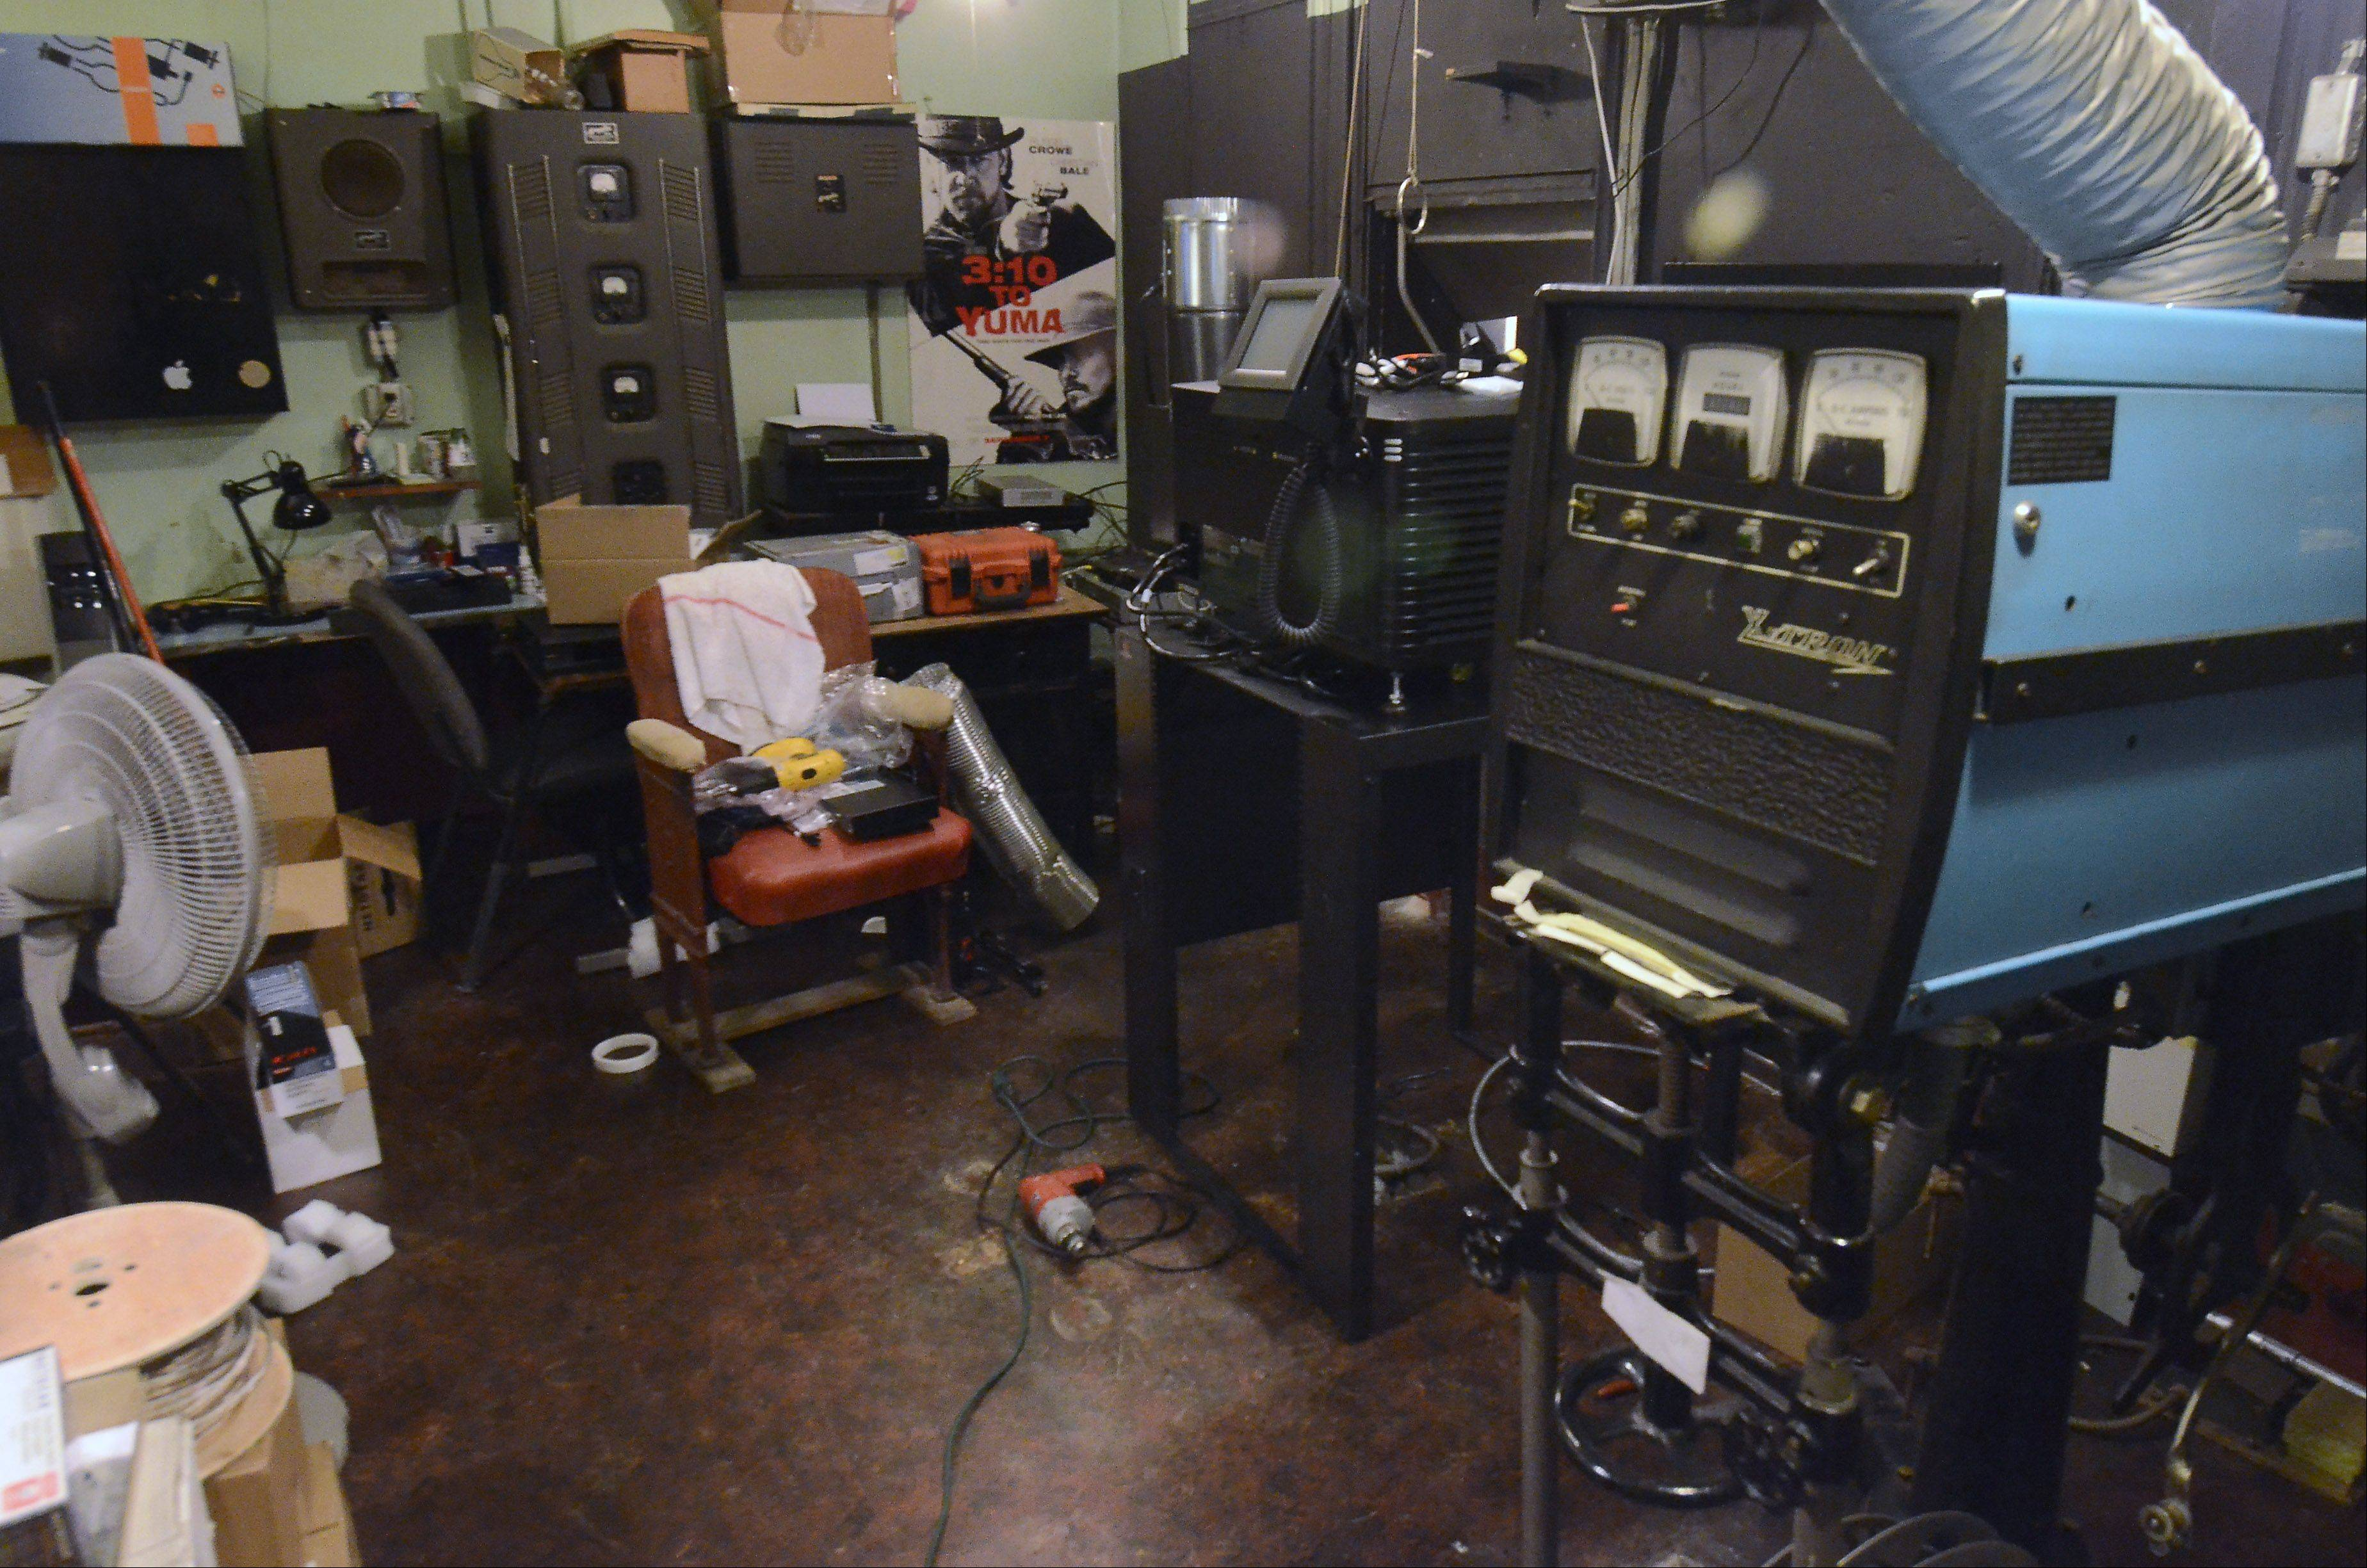 The old film projector in the projection booth at the Catlow theater in Barrington, at right, will be donated to the Portage theater in Chicago. The projector was replaced Wednesday as the theater welcomed a new digital projector purchased through patron donations.